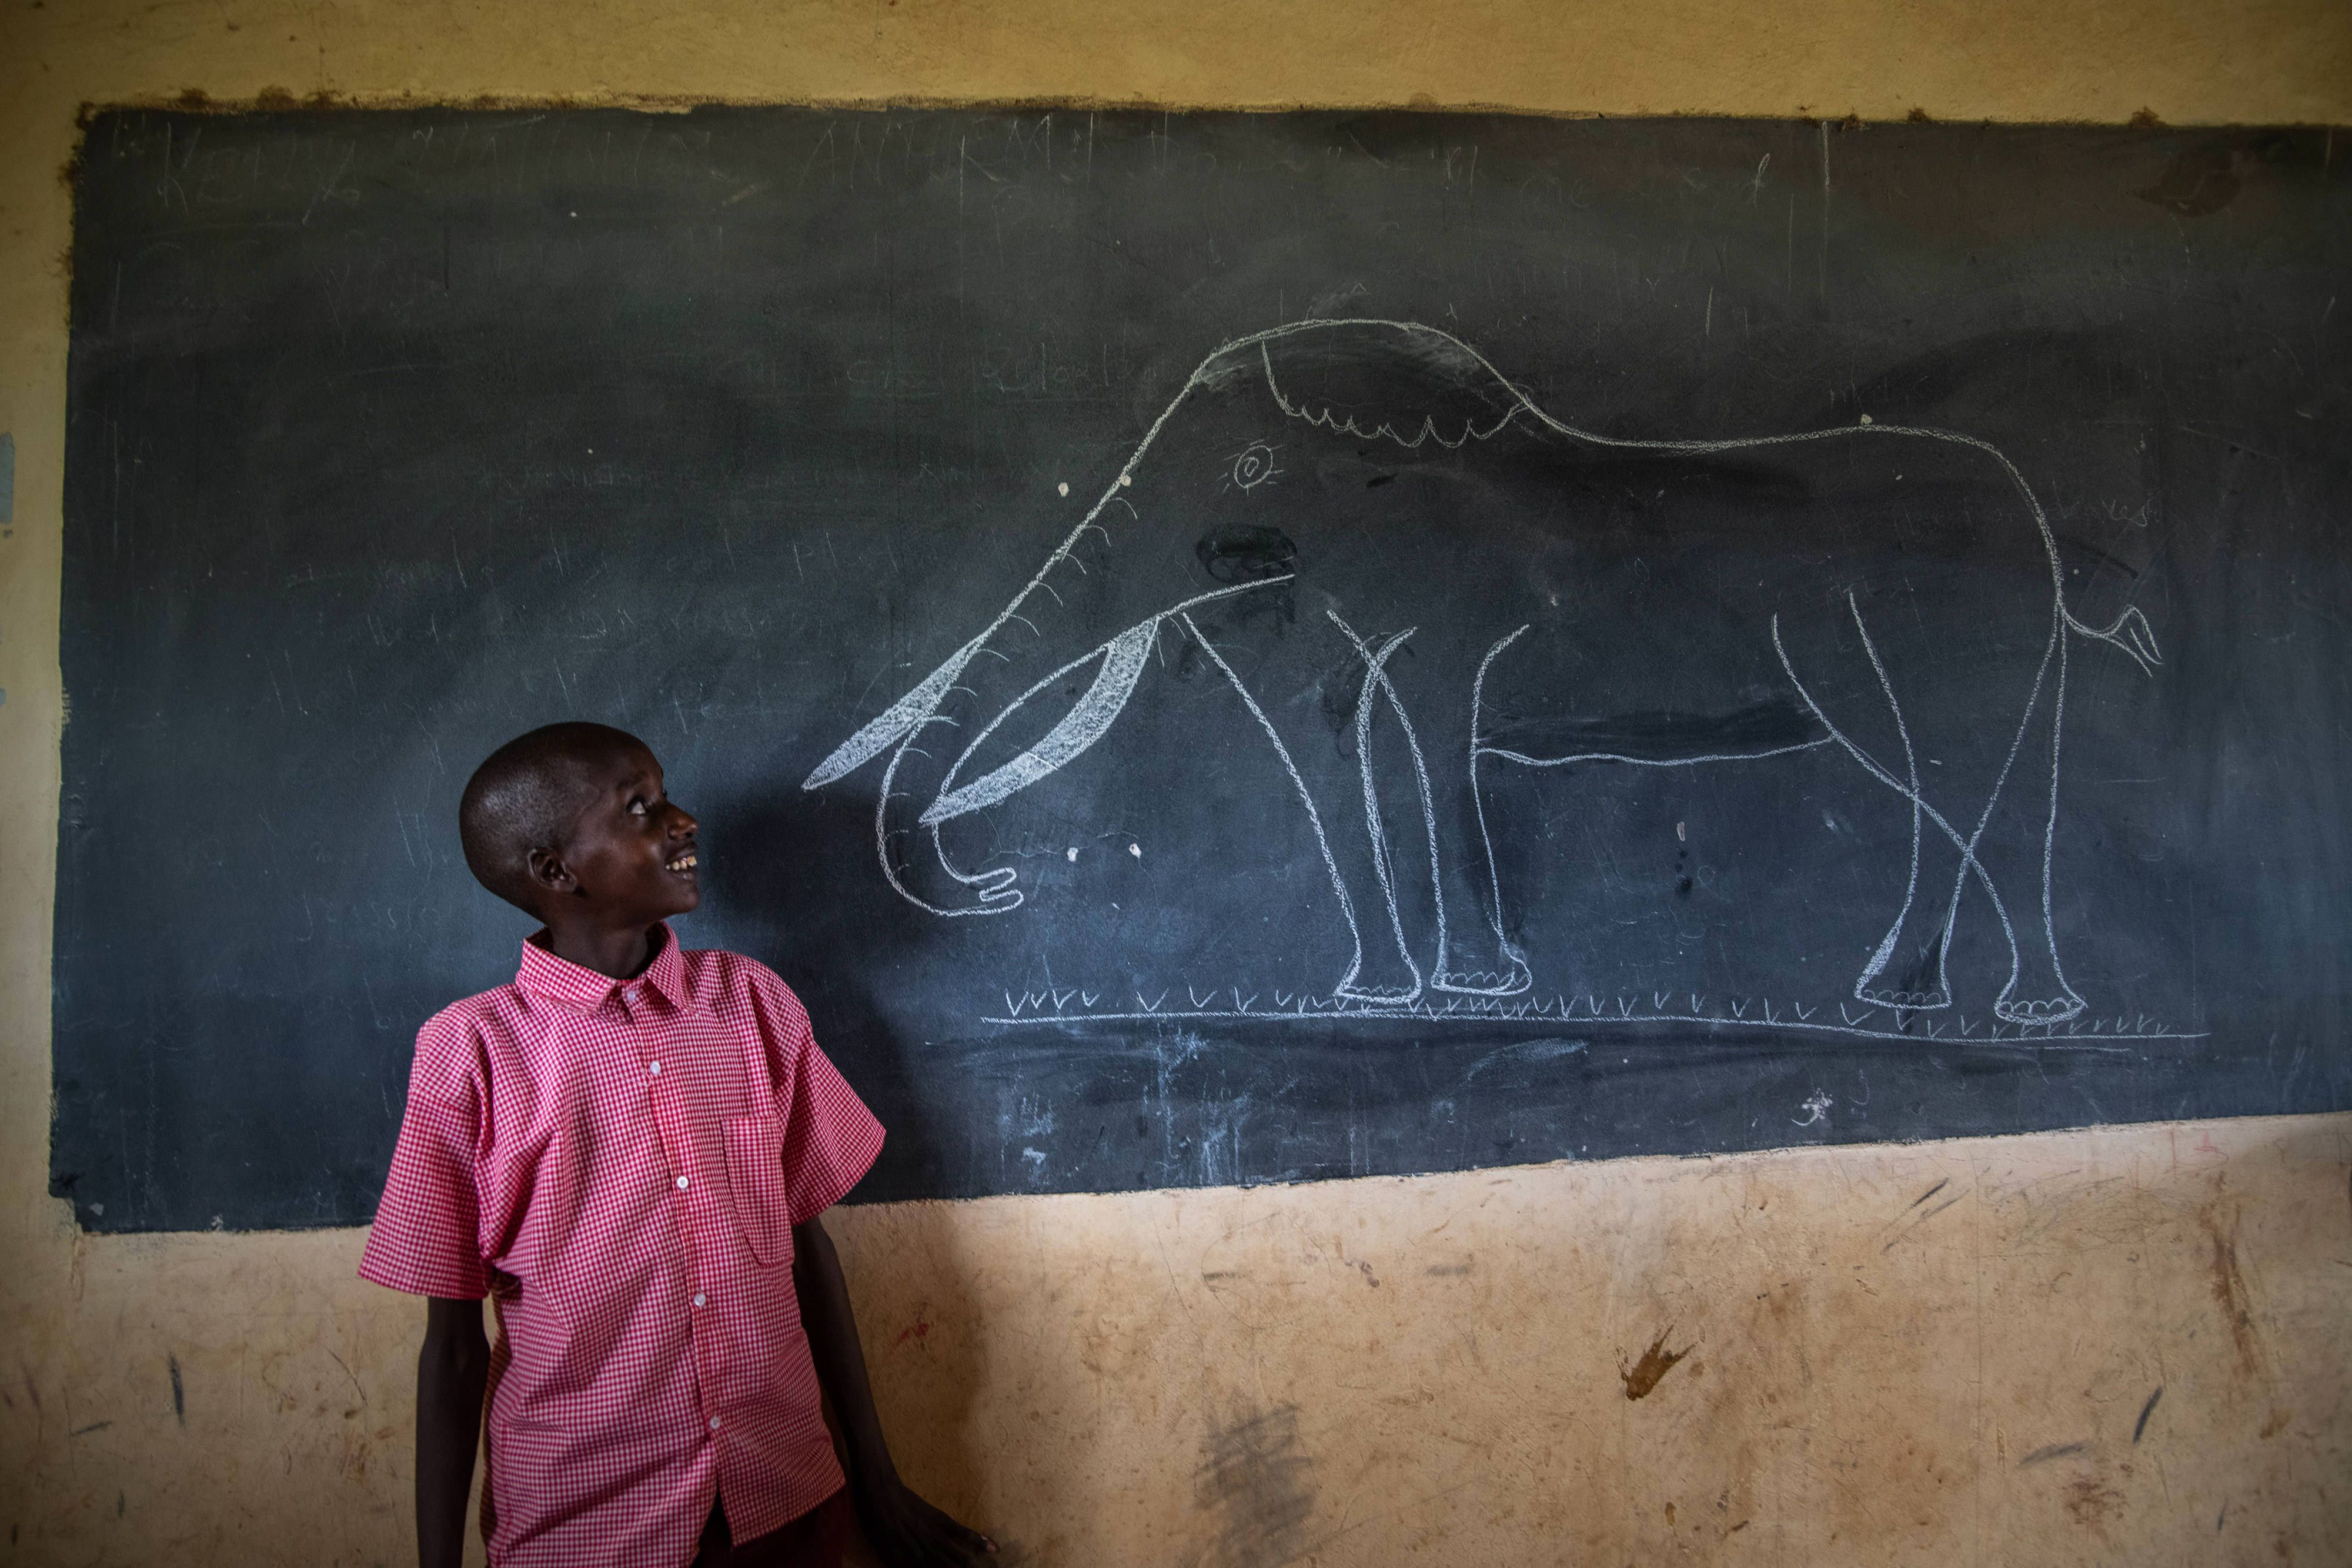 a boy stands next to a chalk board with a drawing of an elephant on it